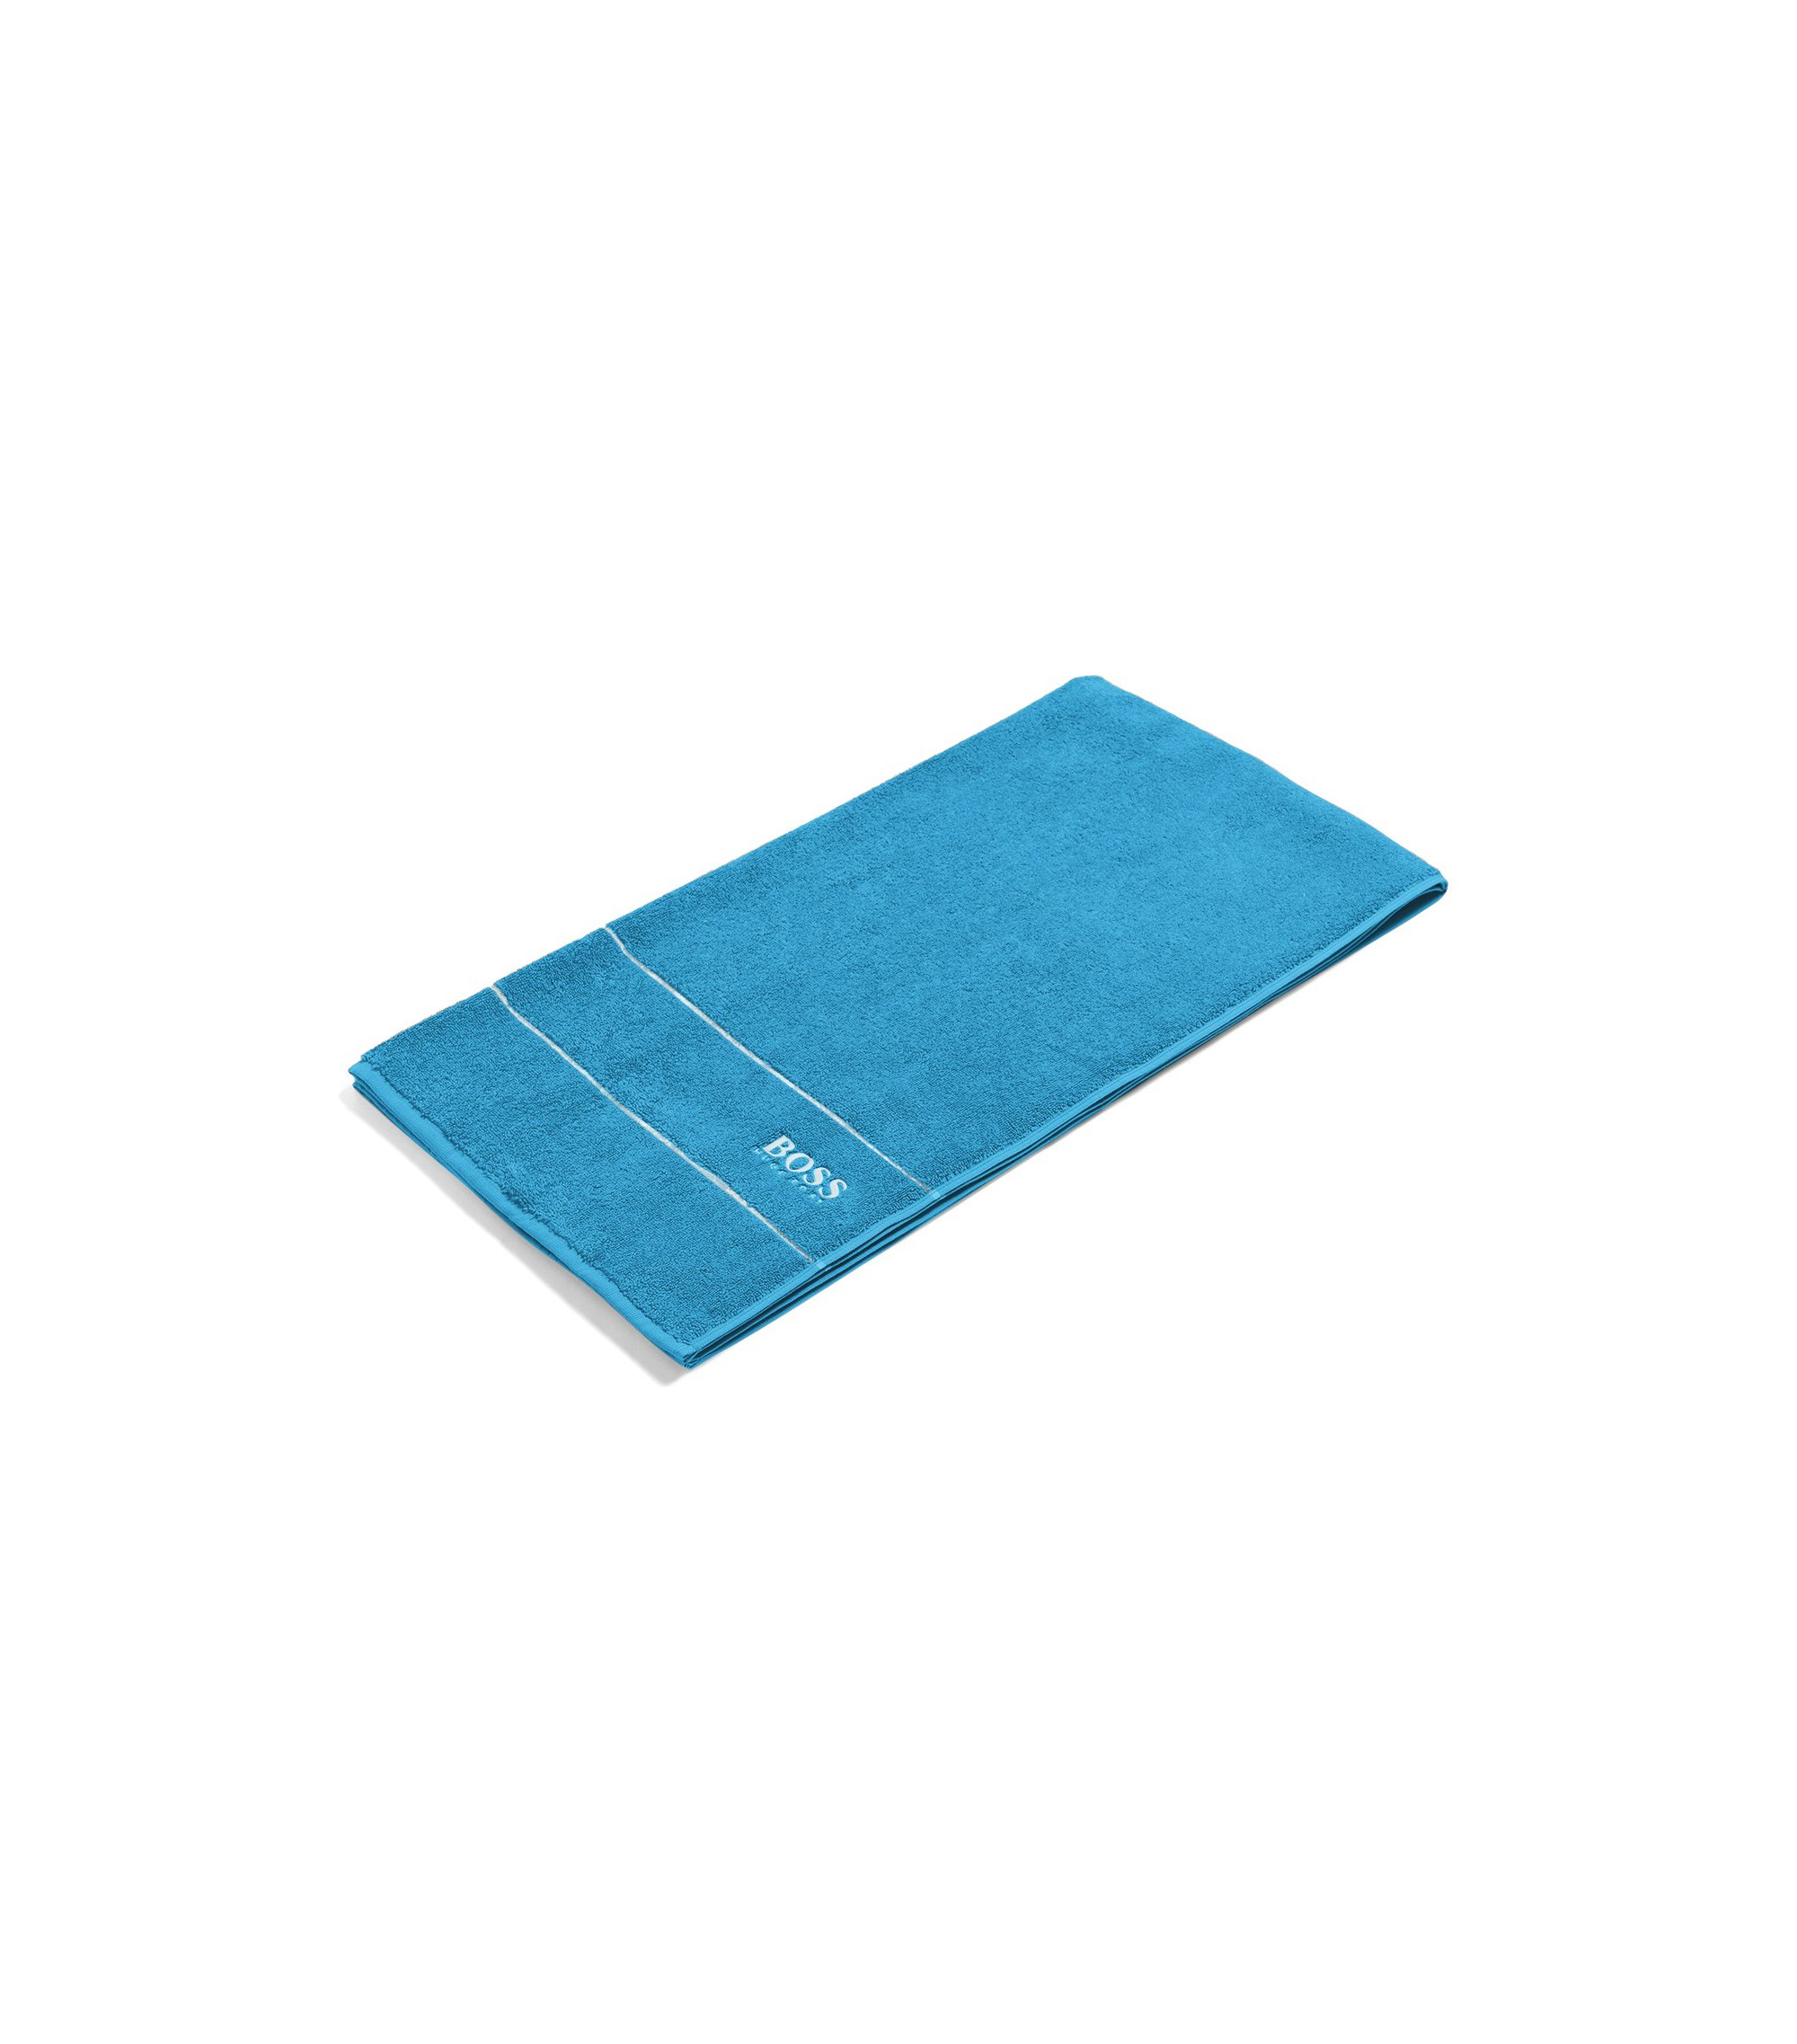 Finest Egyptian cotton bath towel with logo border, Blue